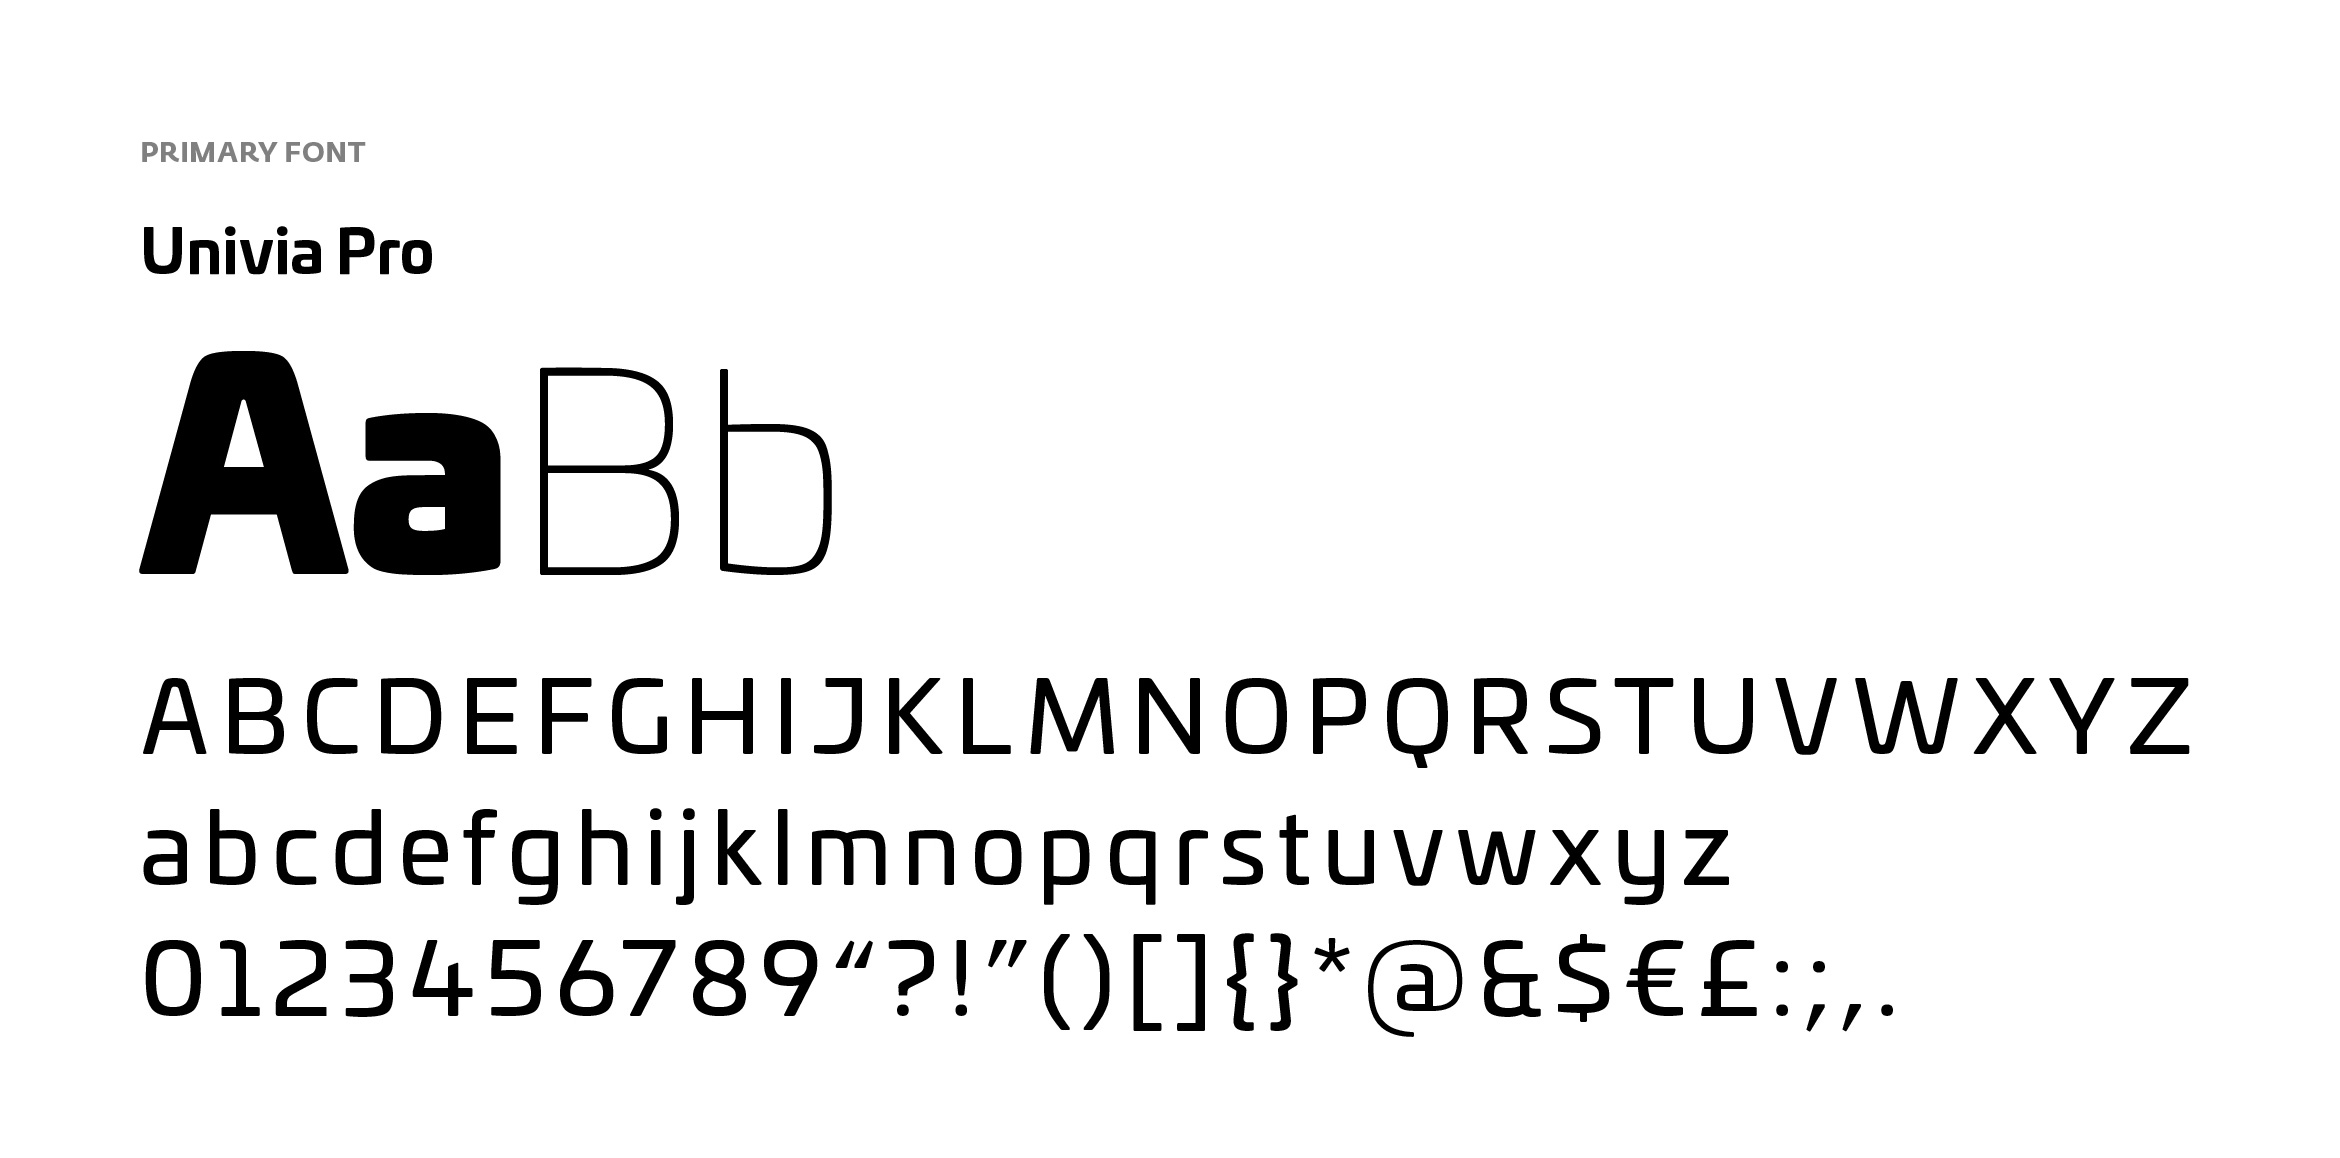 Primary font